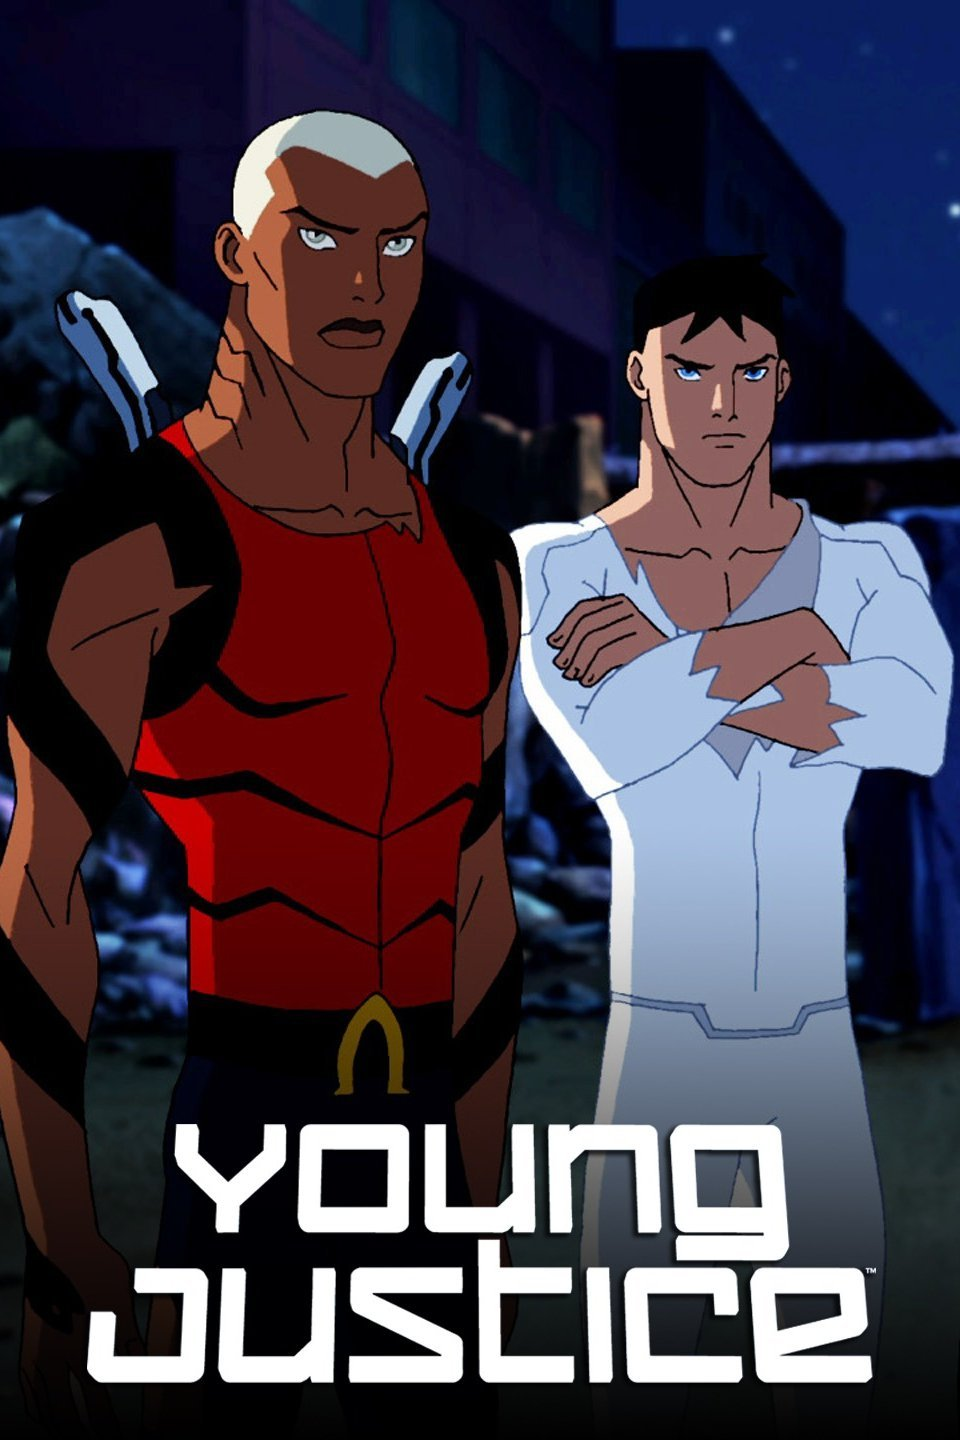 Young Justice (2010) Episode 1